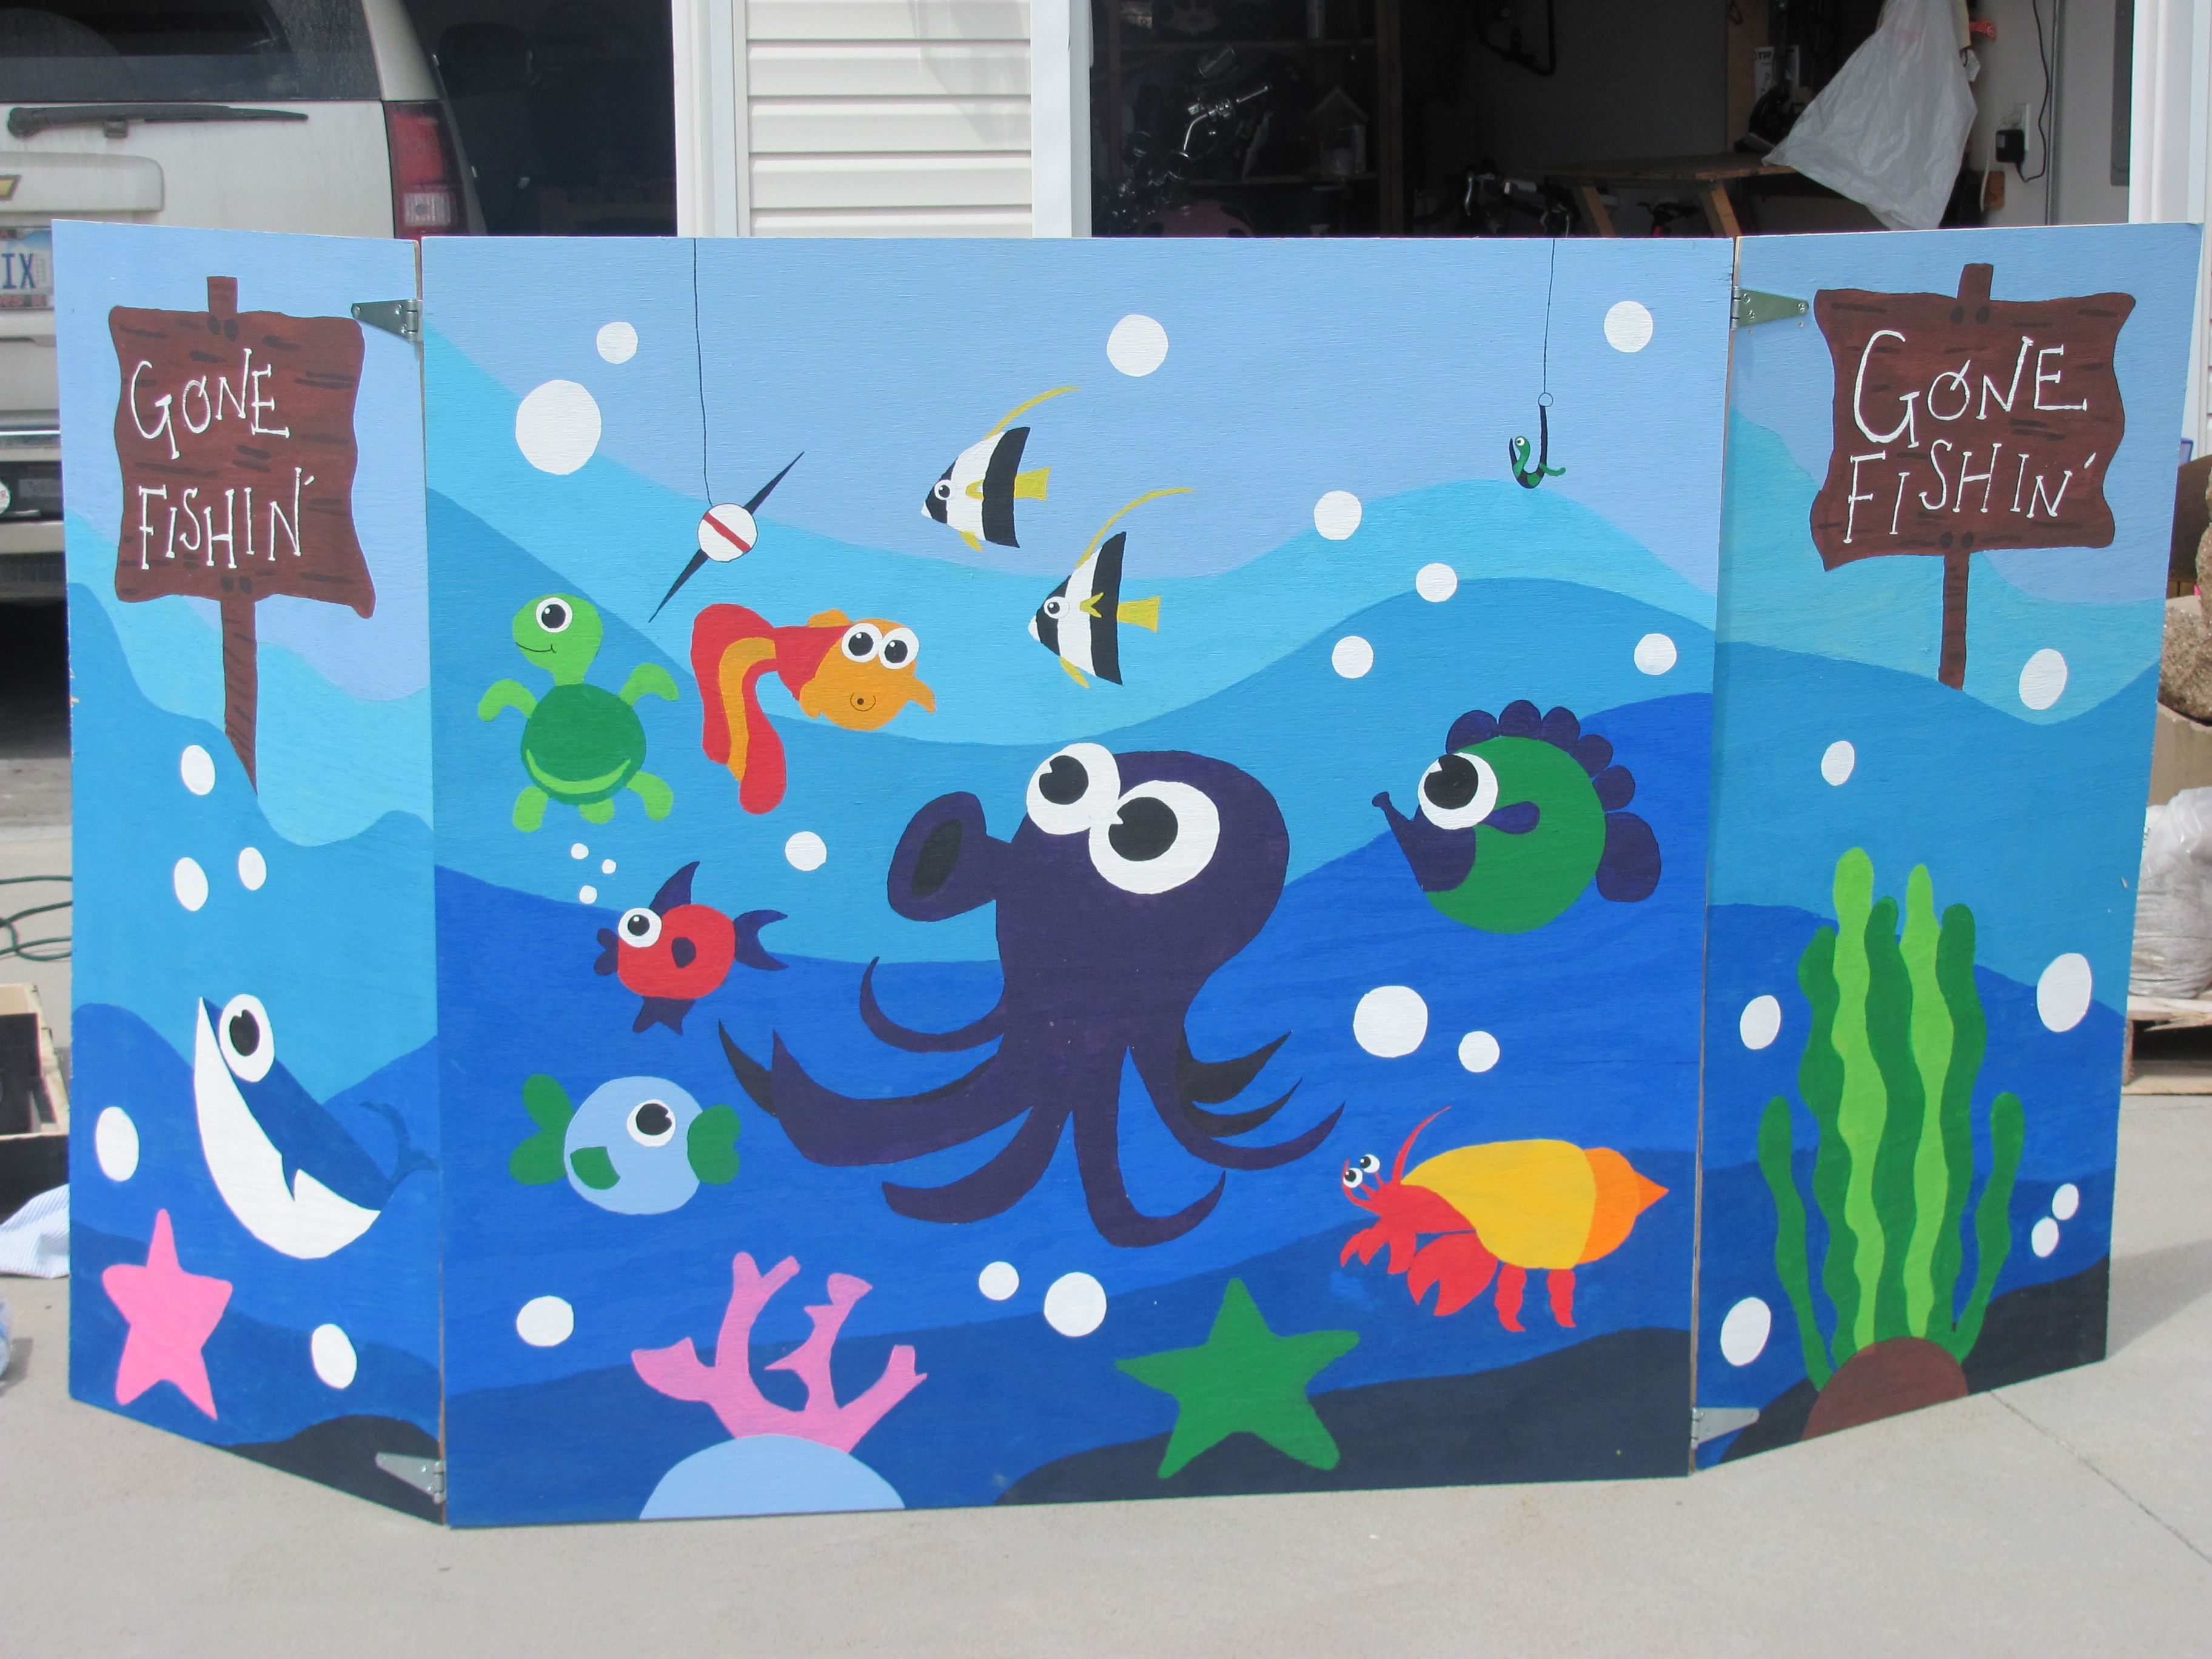 Look At This Fishing Booth Design That Was Created For A School Event A Creative Volunteer Co